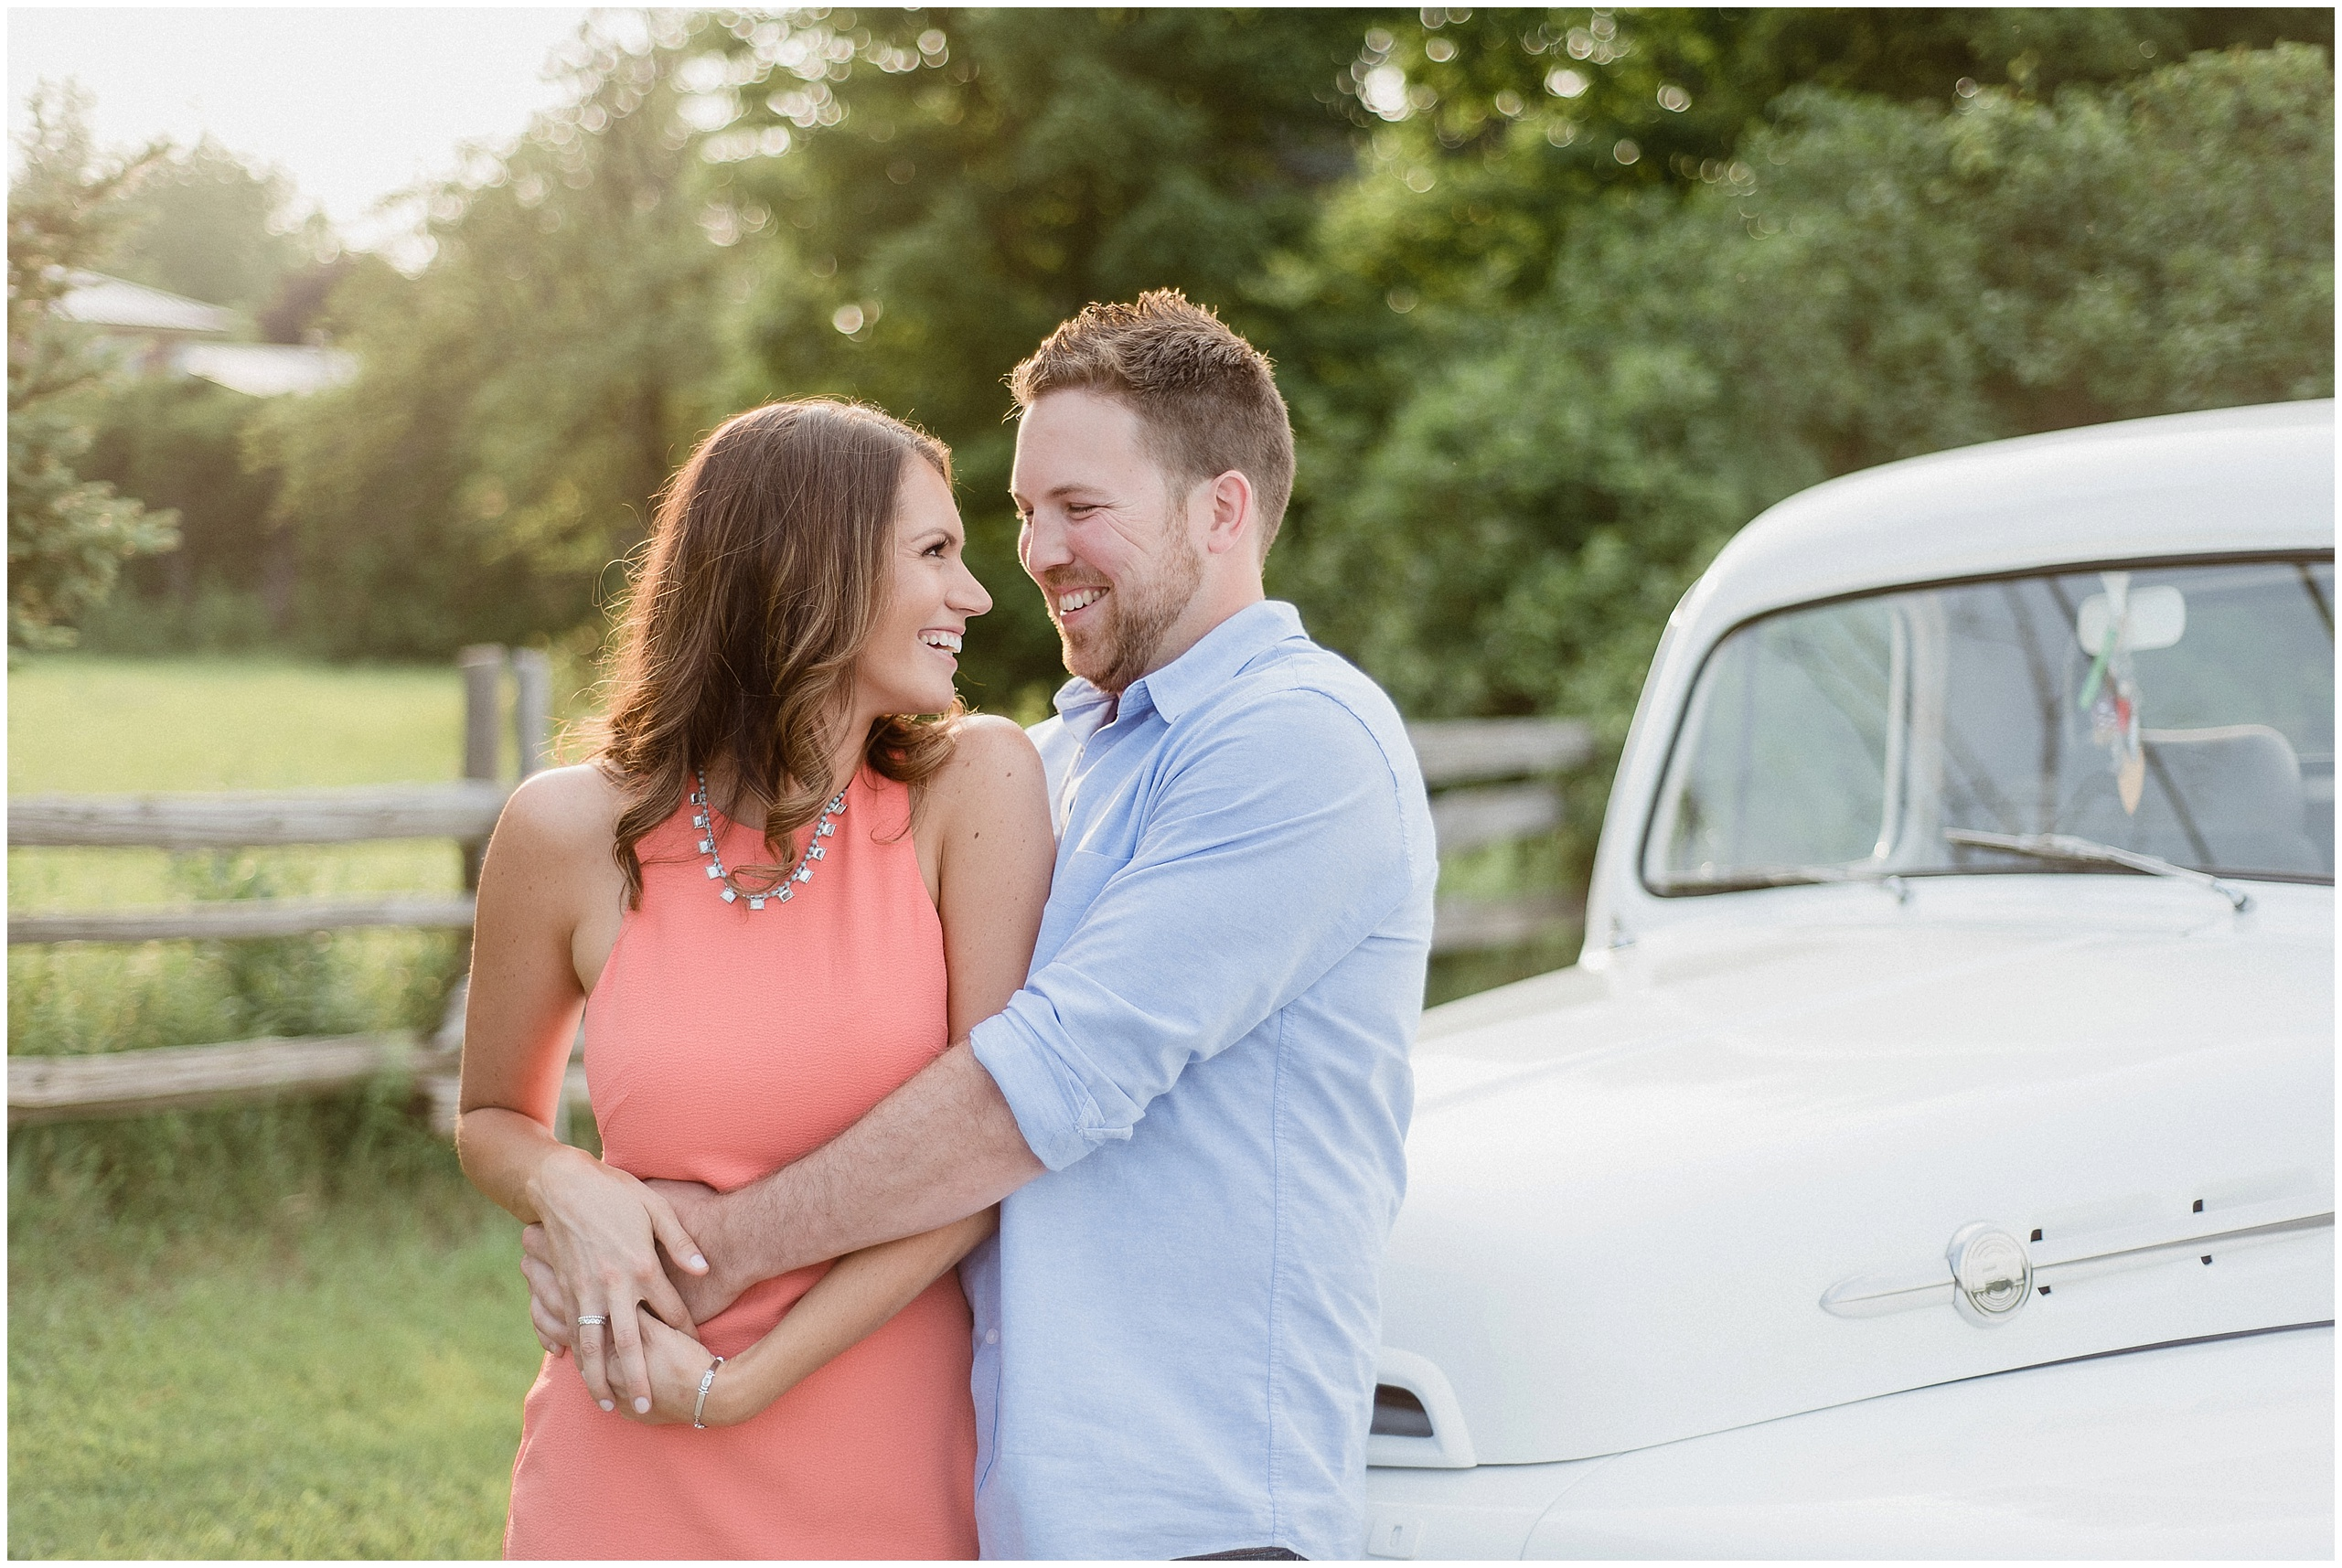 Lake Simcoe Engagement Photos by Jenn Kavanagh Photography, featuring a white antique Ford truck